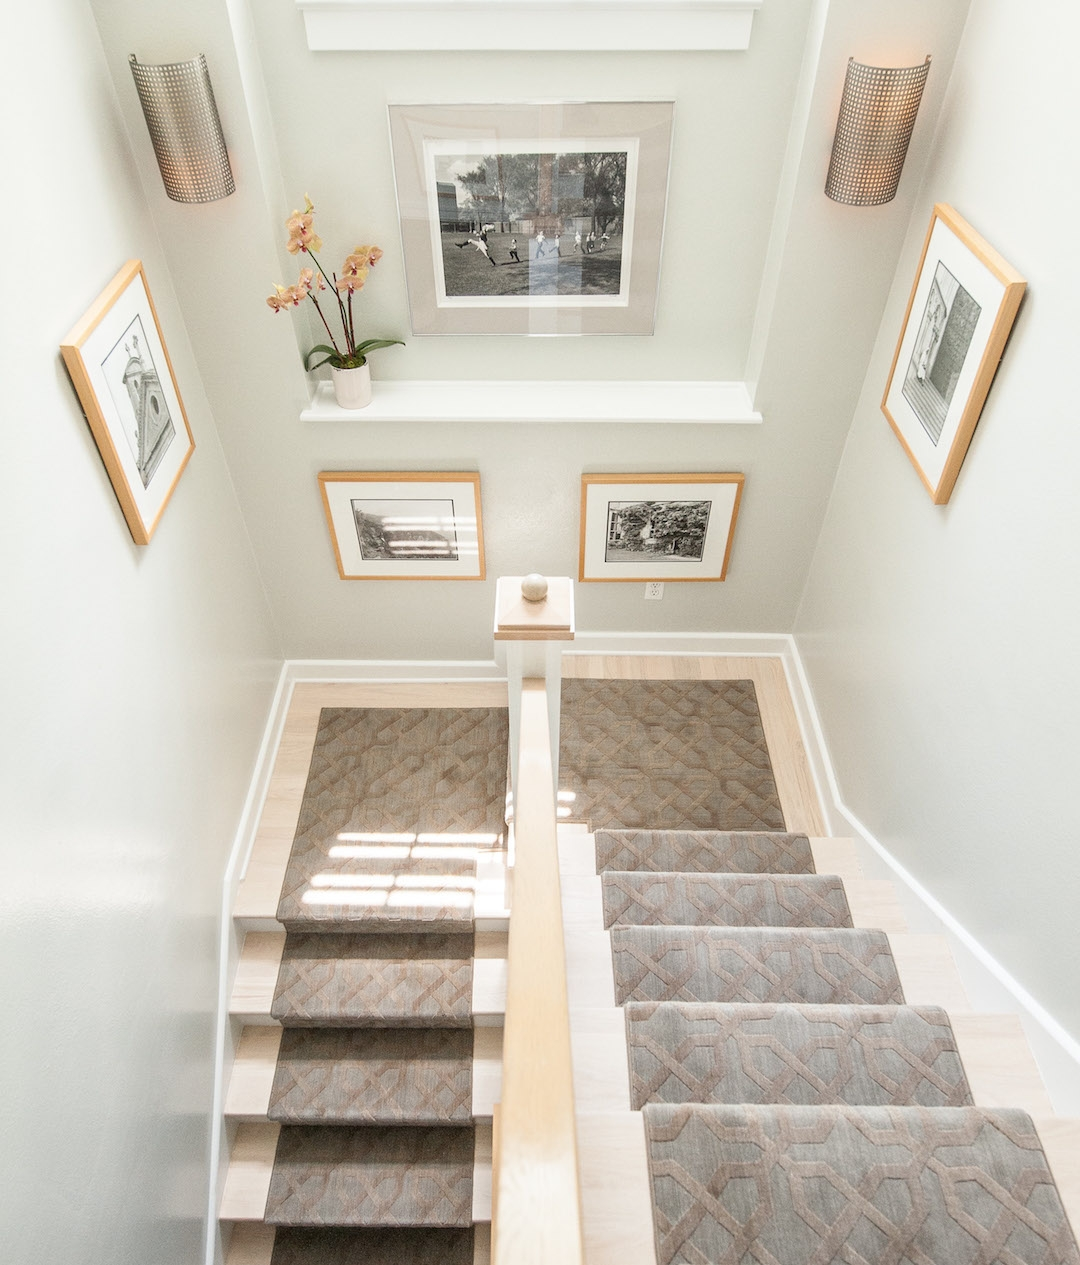 Stair Runners With Rug Runners For Stairs (#17 of 20)